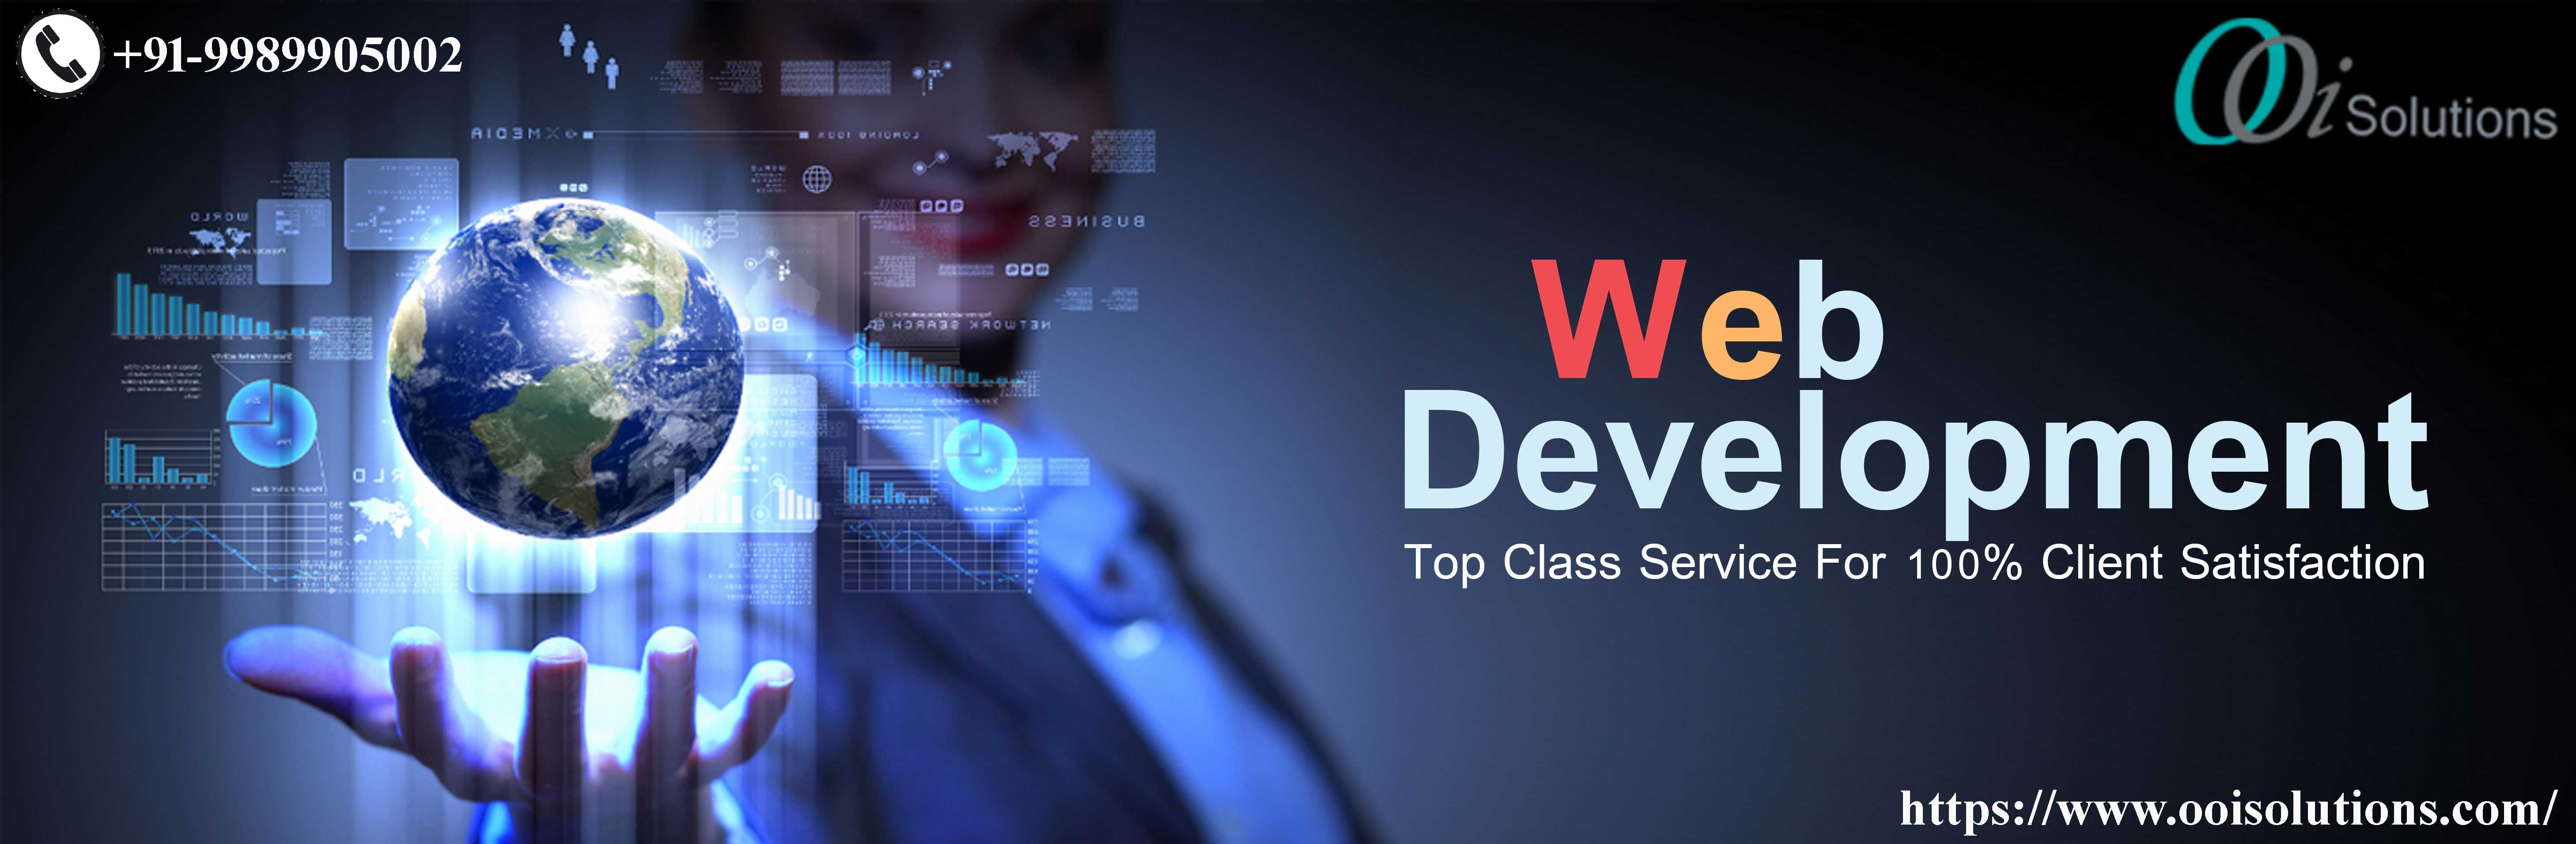 Ooi Solutions Is A Web Development Company In Vijayawada And An Experienced Full Service Software Company S Web Development Development Web Development Company